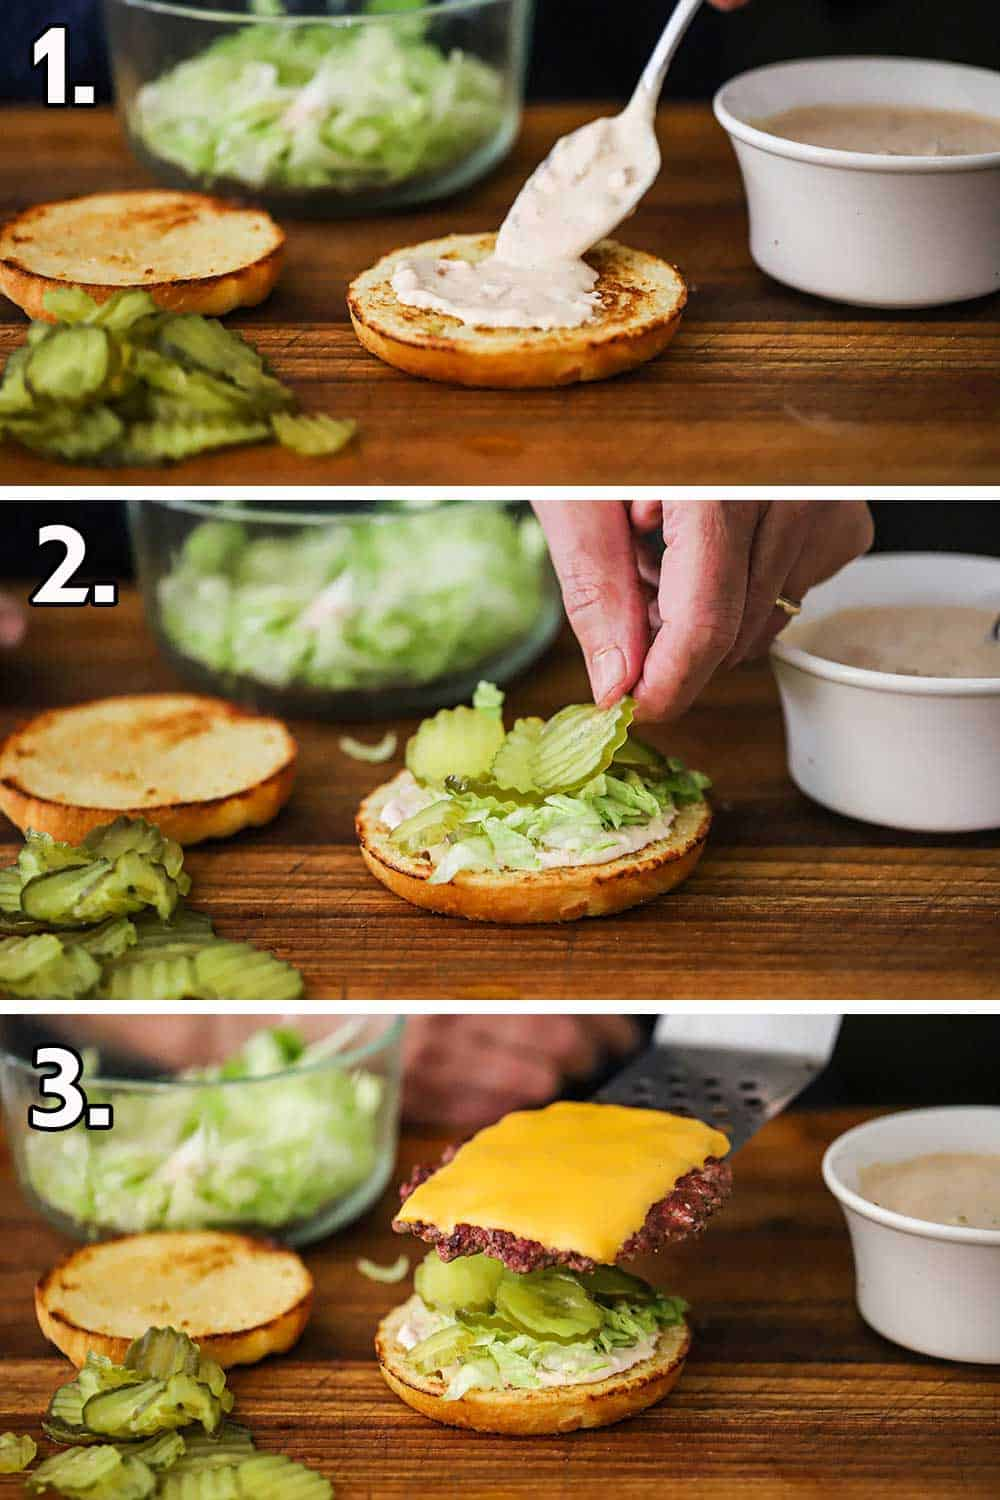 A person spooning Russian dressing onto a bottom hamburger bun and then that person placing lettuce and pickles on it and then a hamburger patty with cheese on top.